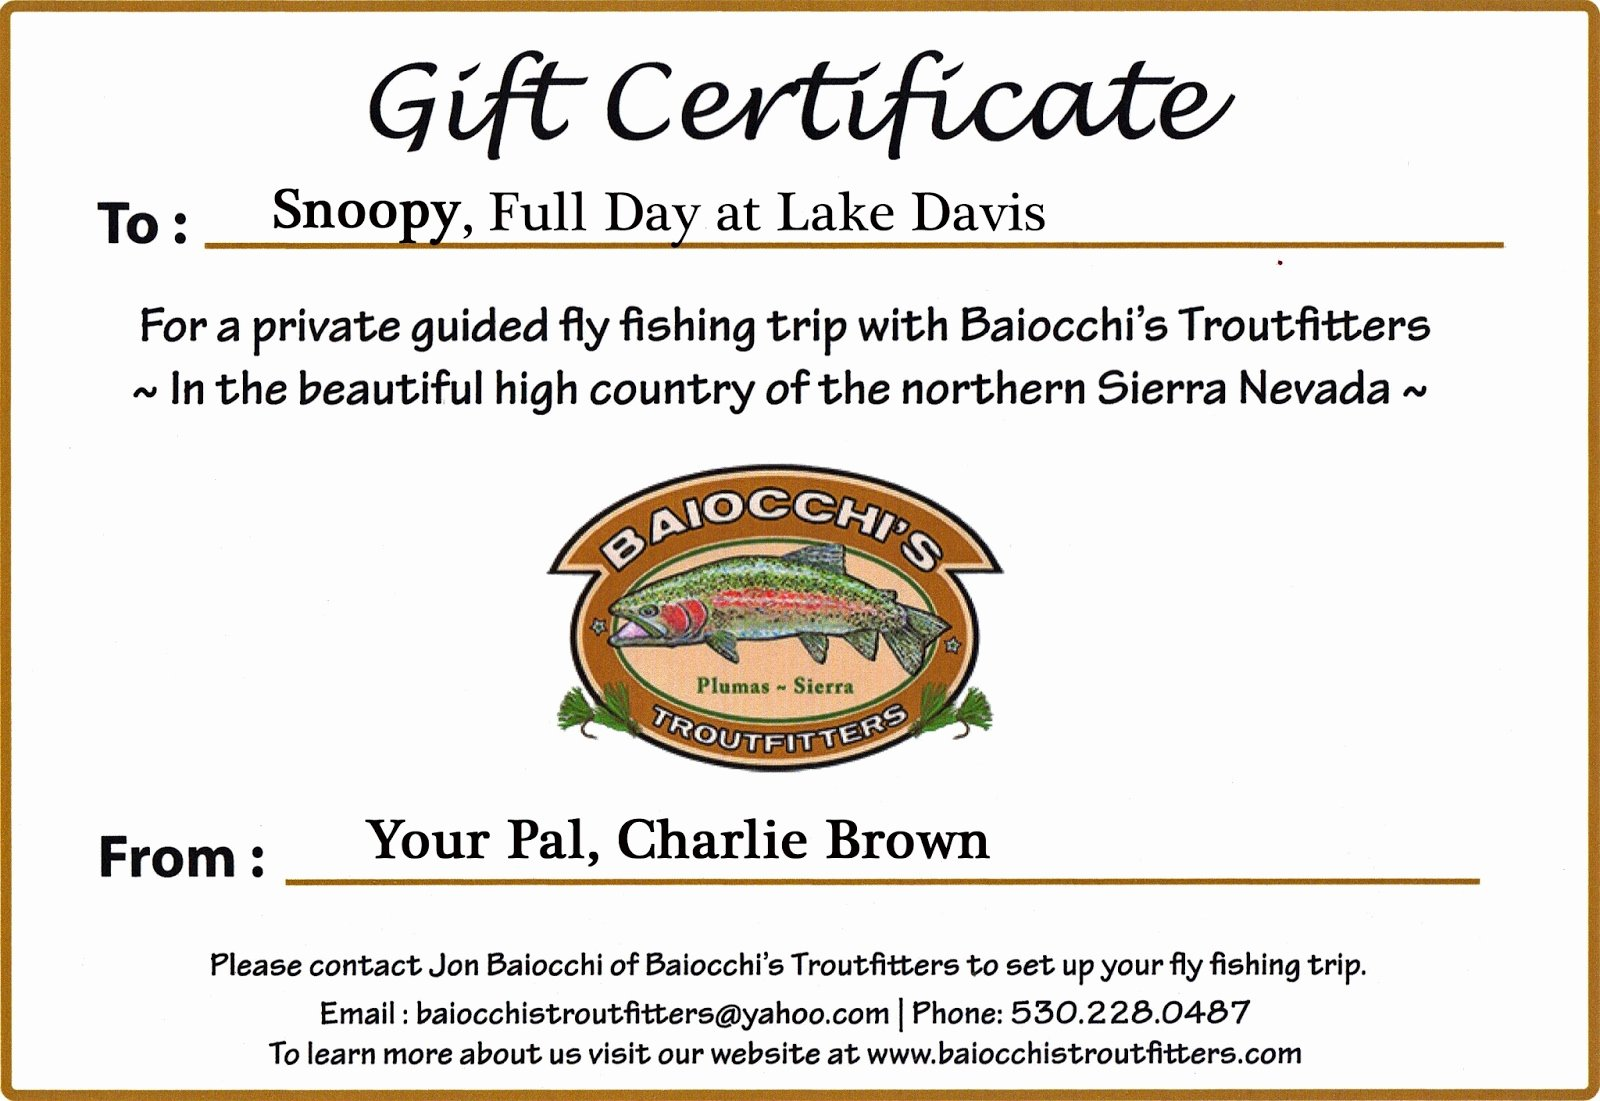 Fishing Gift Certificate Template Best Of Jon Baiocchi Fly Fishing News Baiocchi S Troutfitters